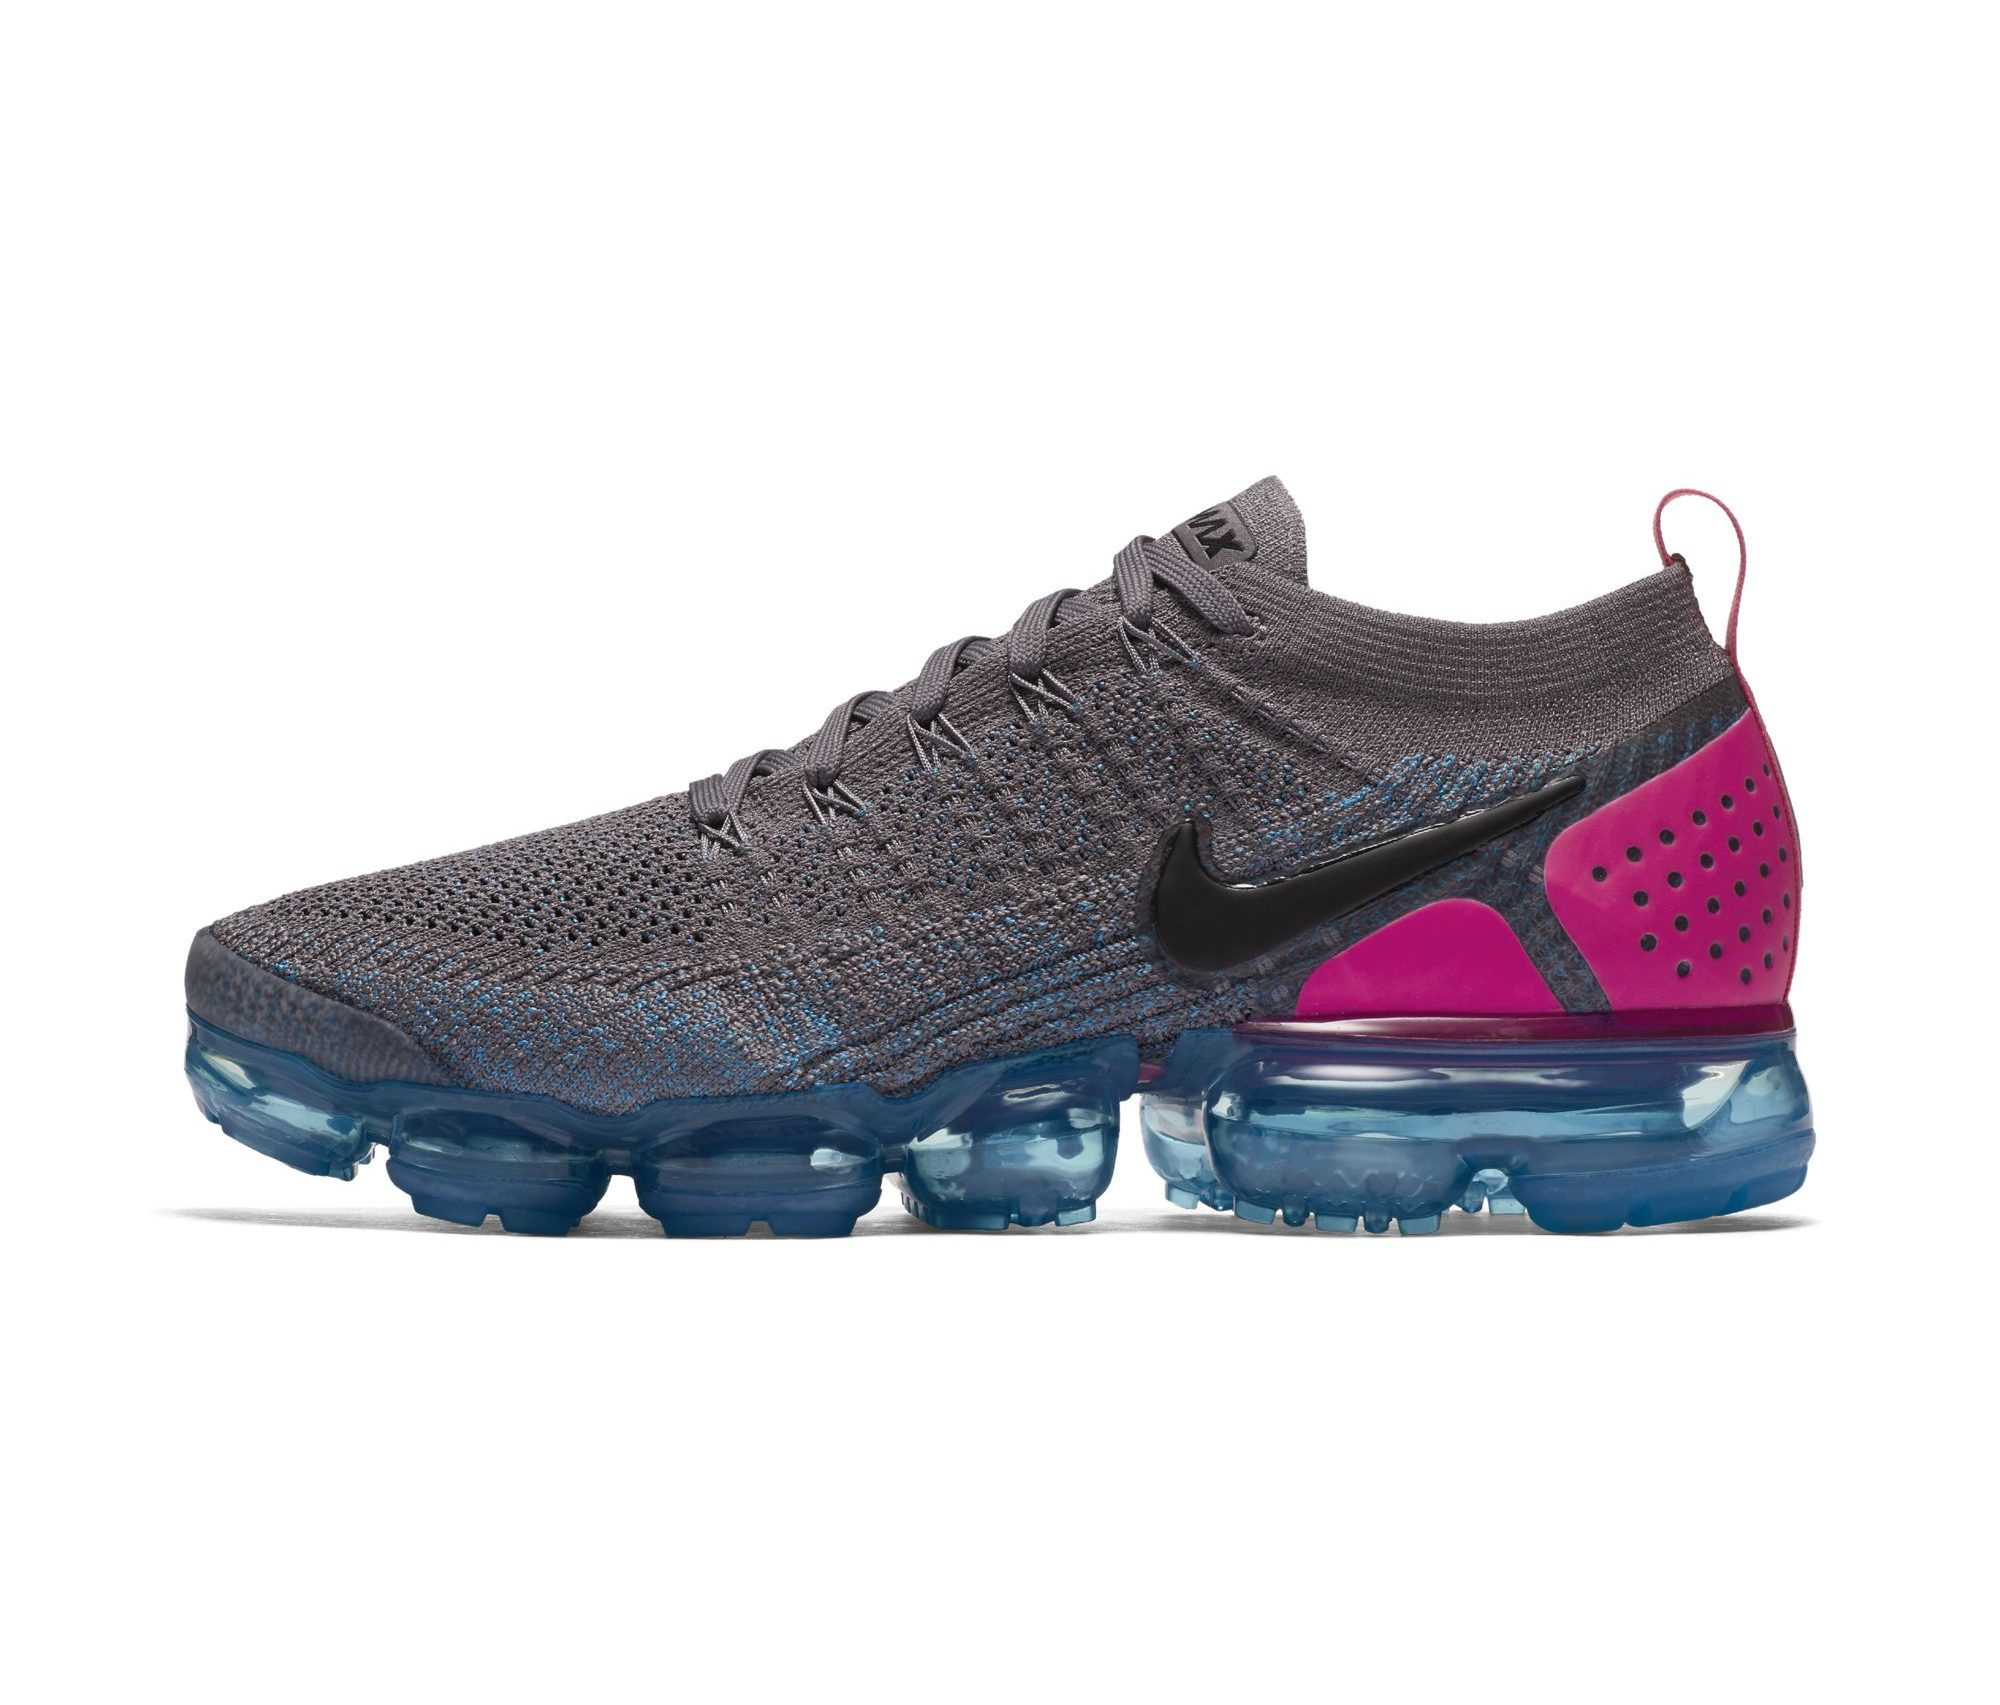 c28e889e5e6f NIKE AIR VAPORMAX FLYKNIT 2 GUNSMOKE BLACK-BLUE ORBIT-PINK BLAST-BLUE. Apr12